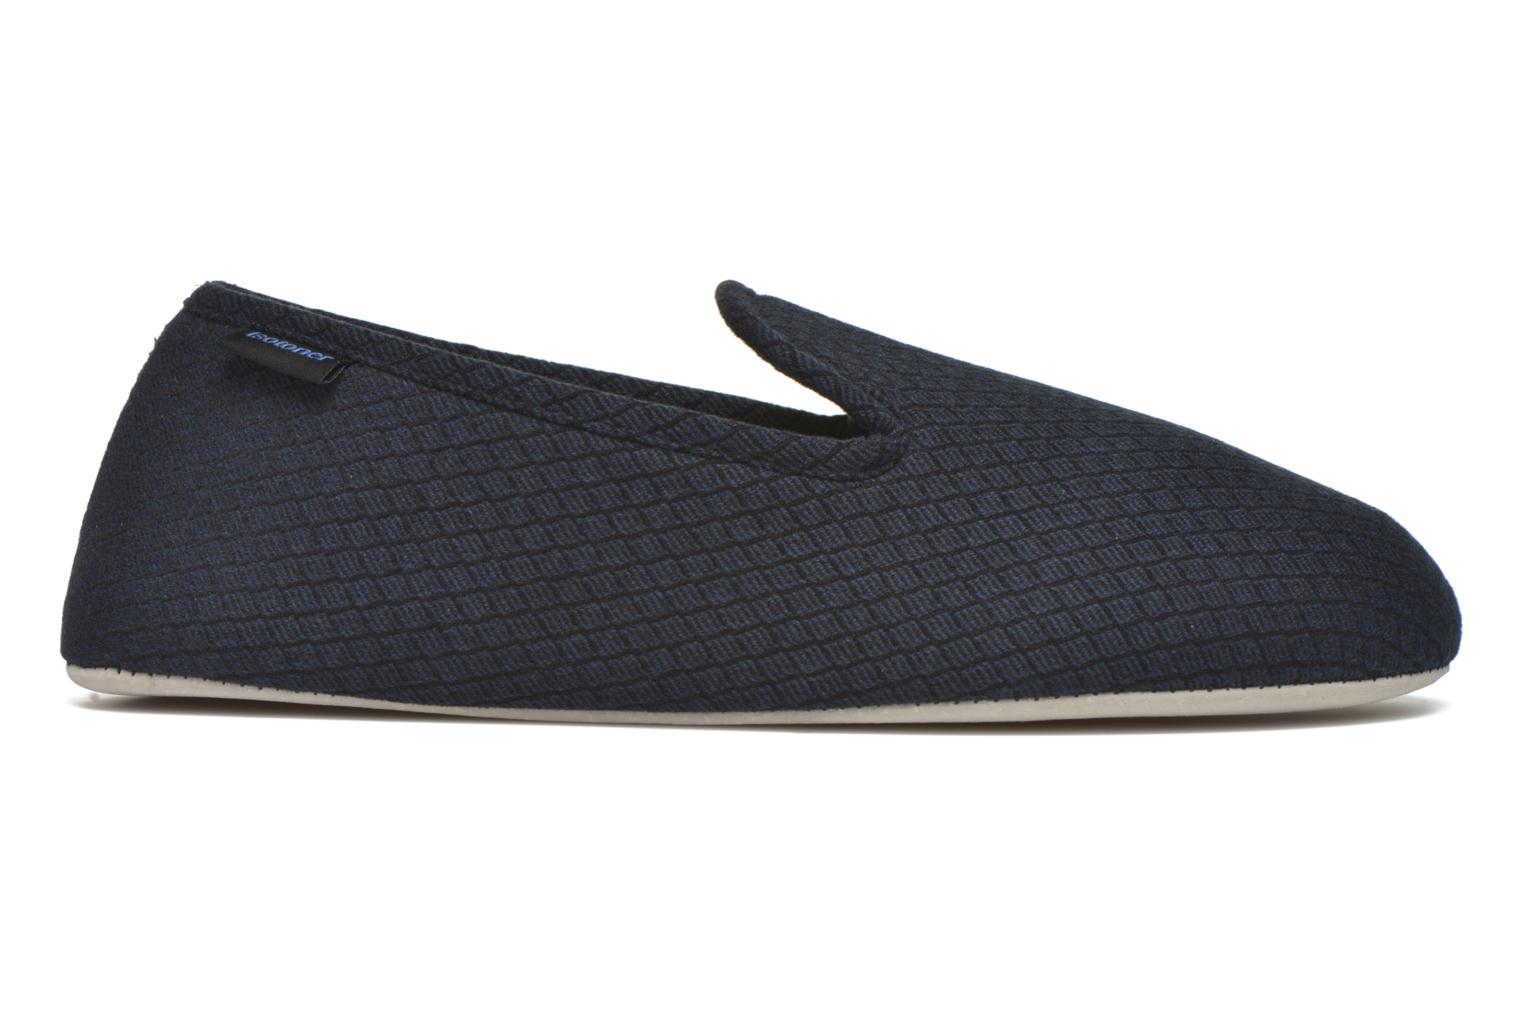 Slipper velours texturé Bleu